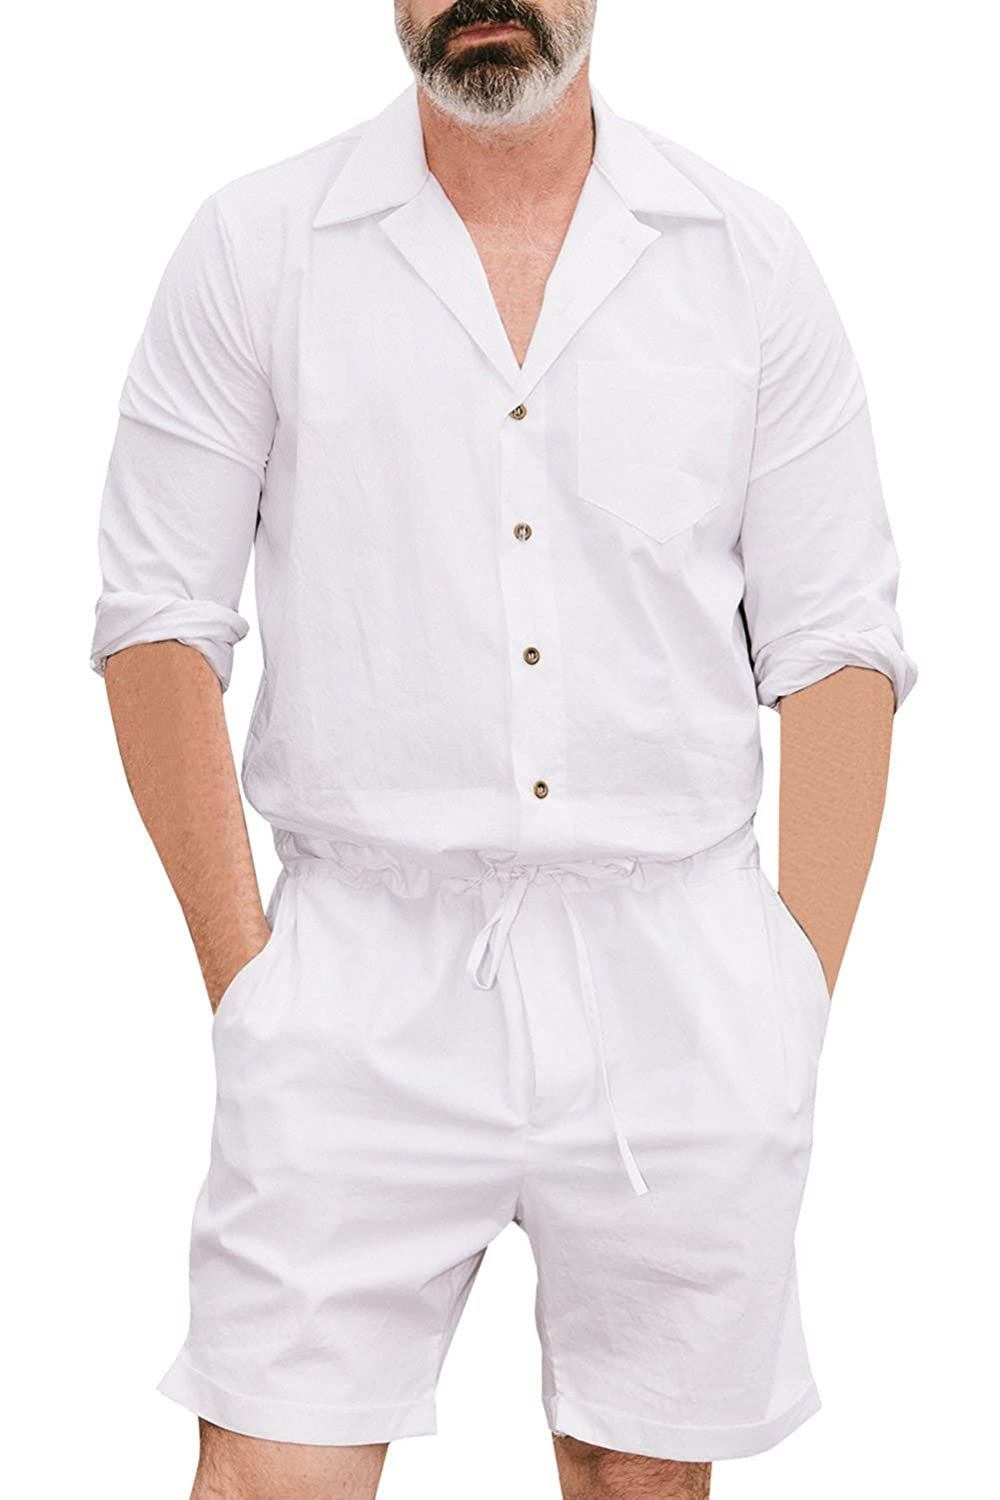 Nansiche Men's Short One Piece Jumpsuits Short Sleeve Casual One Piece